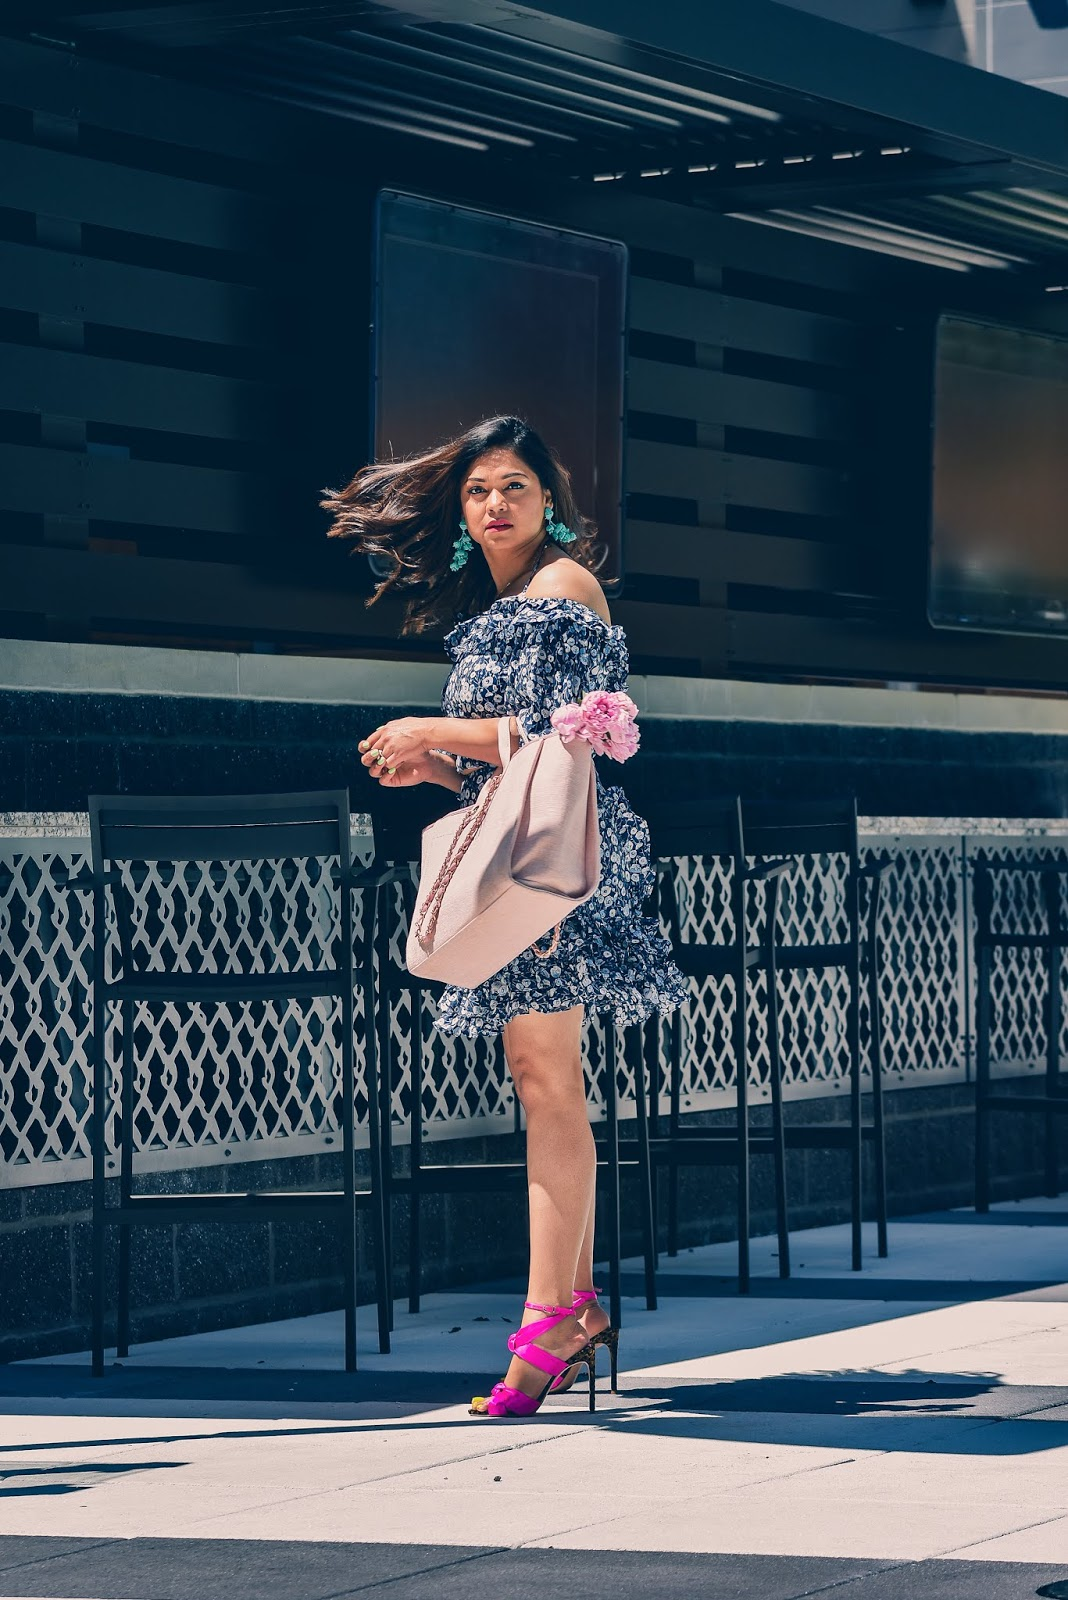 NY AND CO eva mendes set, dc blogger, skirt and top set, flower separates, fashion, dc blogger, dc style, spring fashion, wedding outfit idea, indoor party, date night, sophia webster pink heels, myriad musings, saumya shiohare